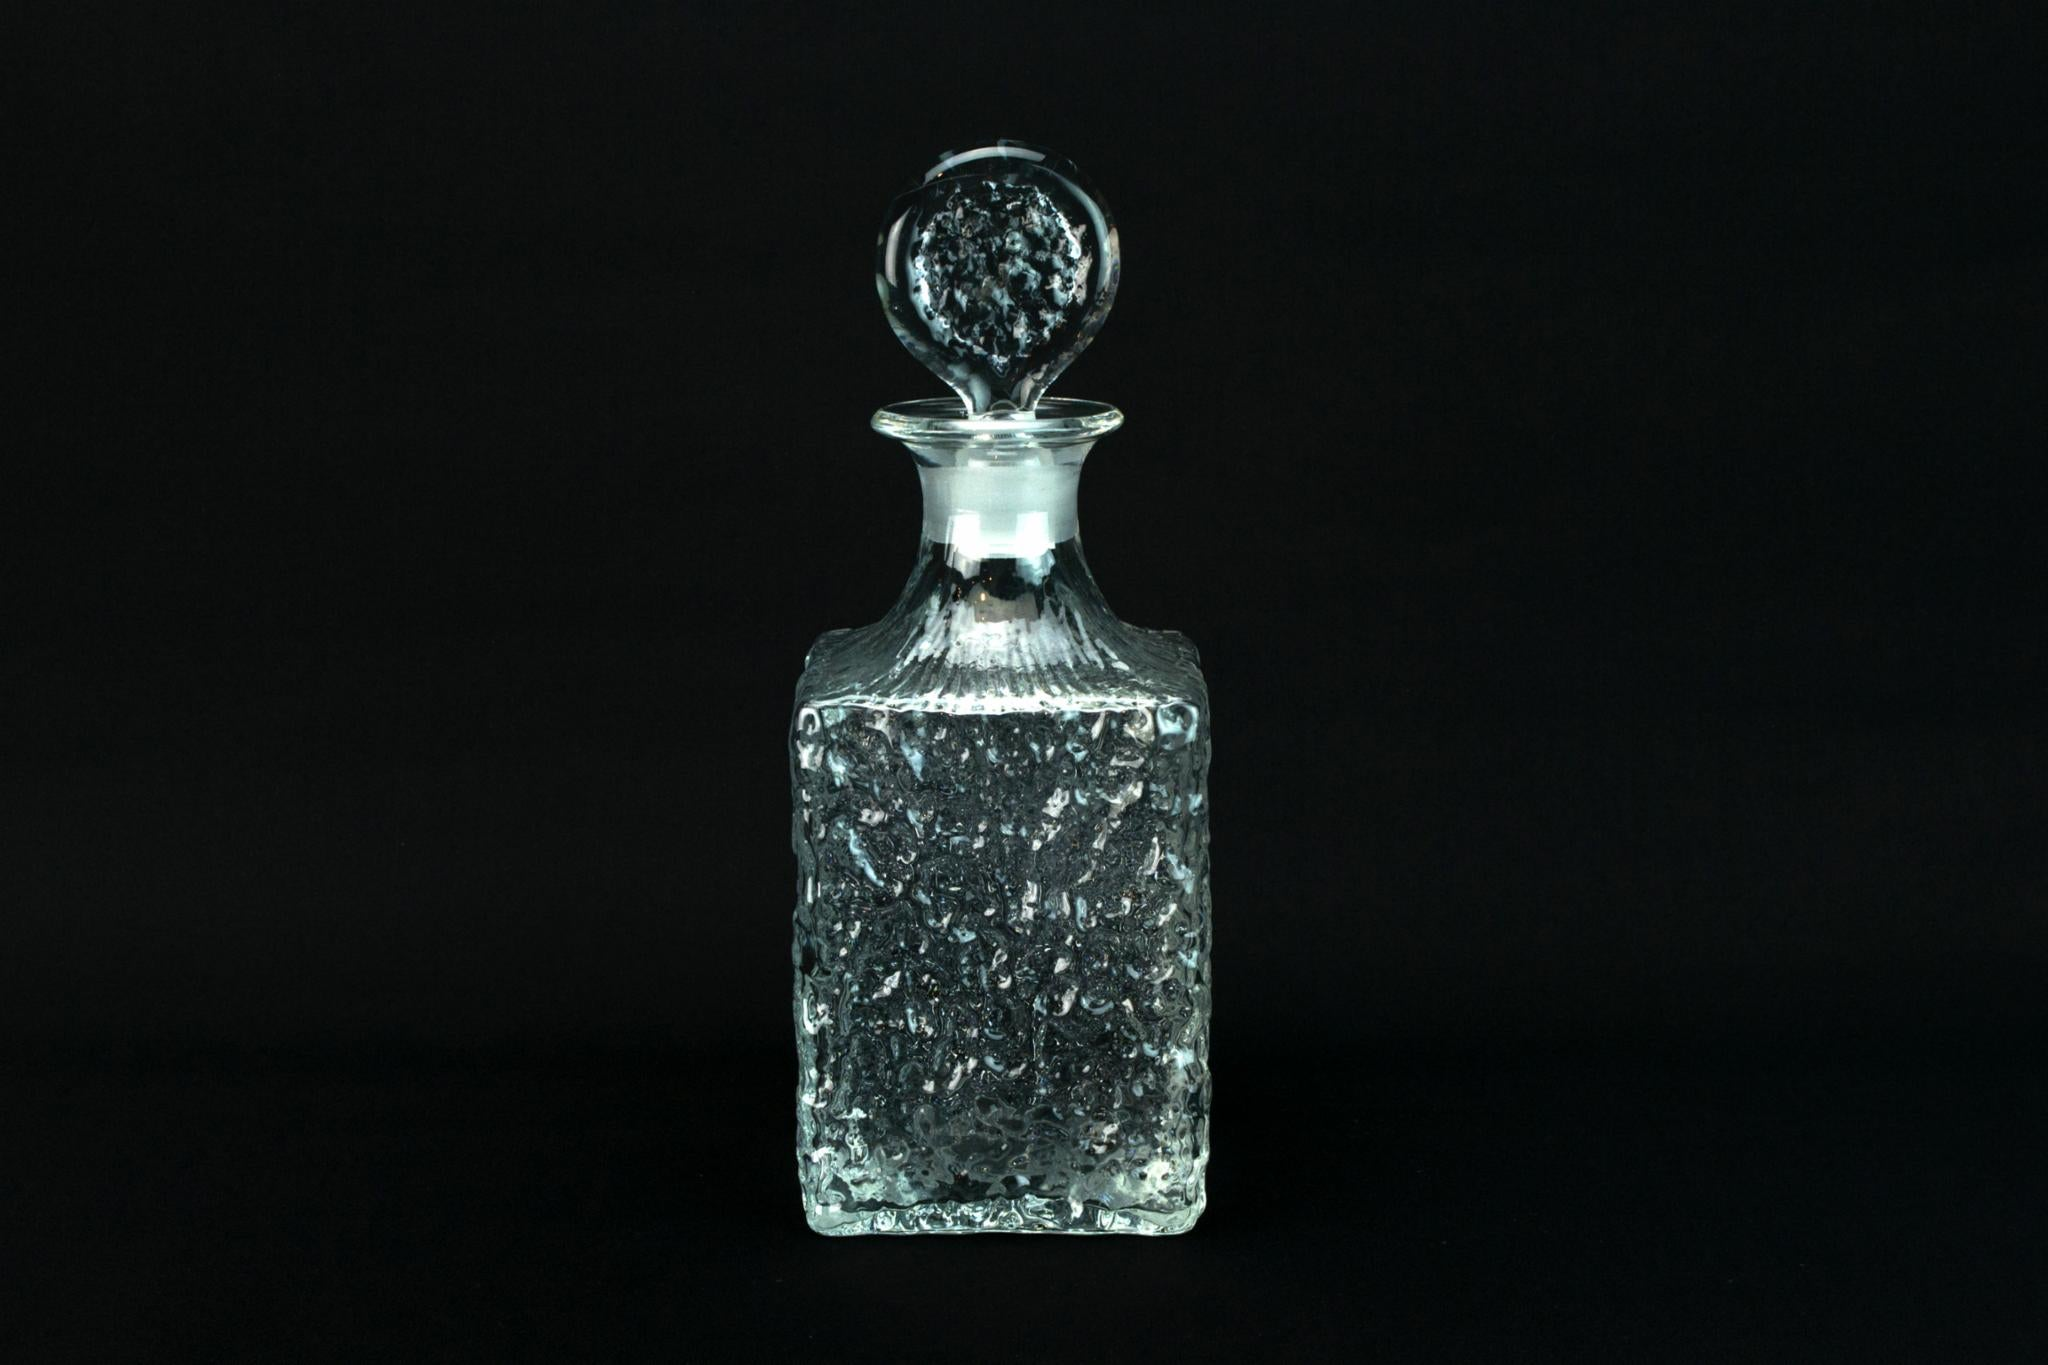 Square Whisky Decanter by Whitefriars, English 1970s